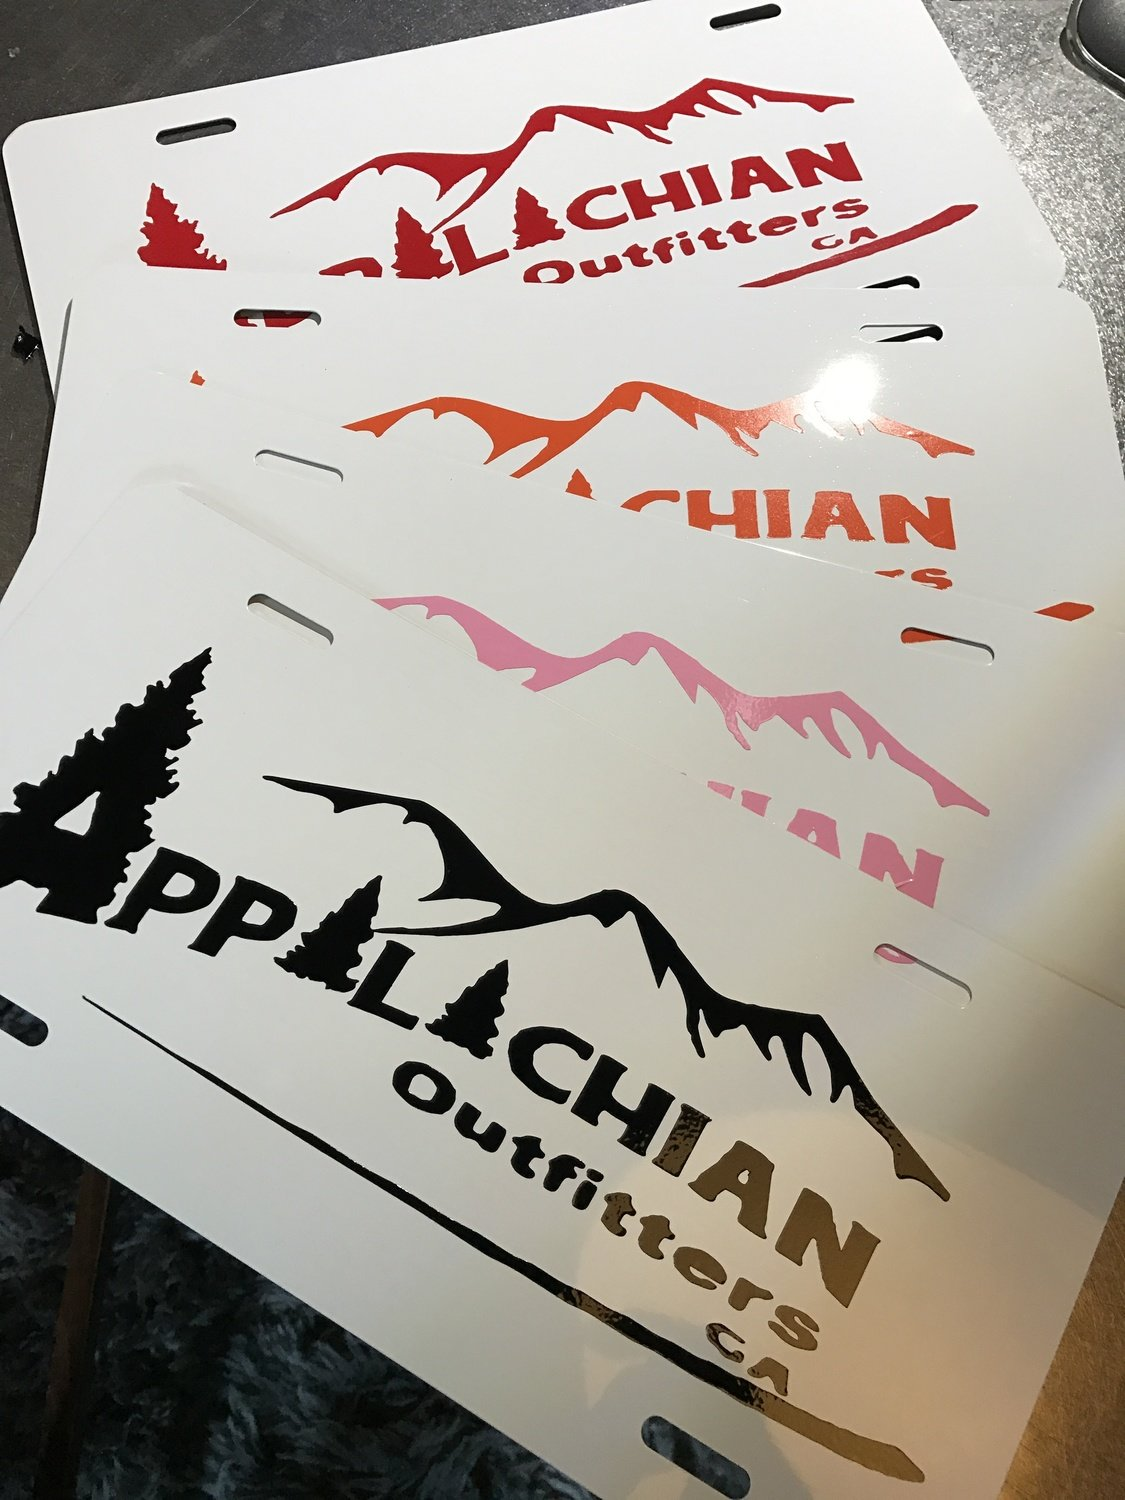 Appalachian Outfitters Car Tag